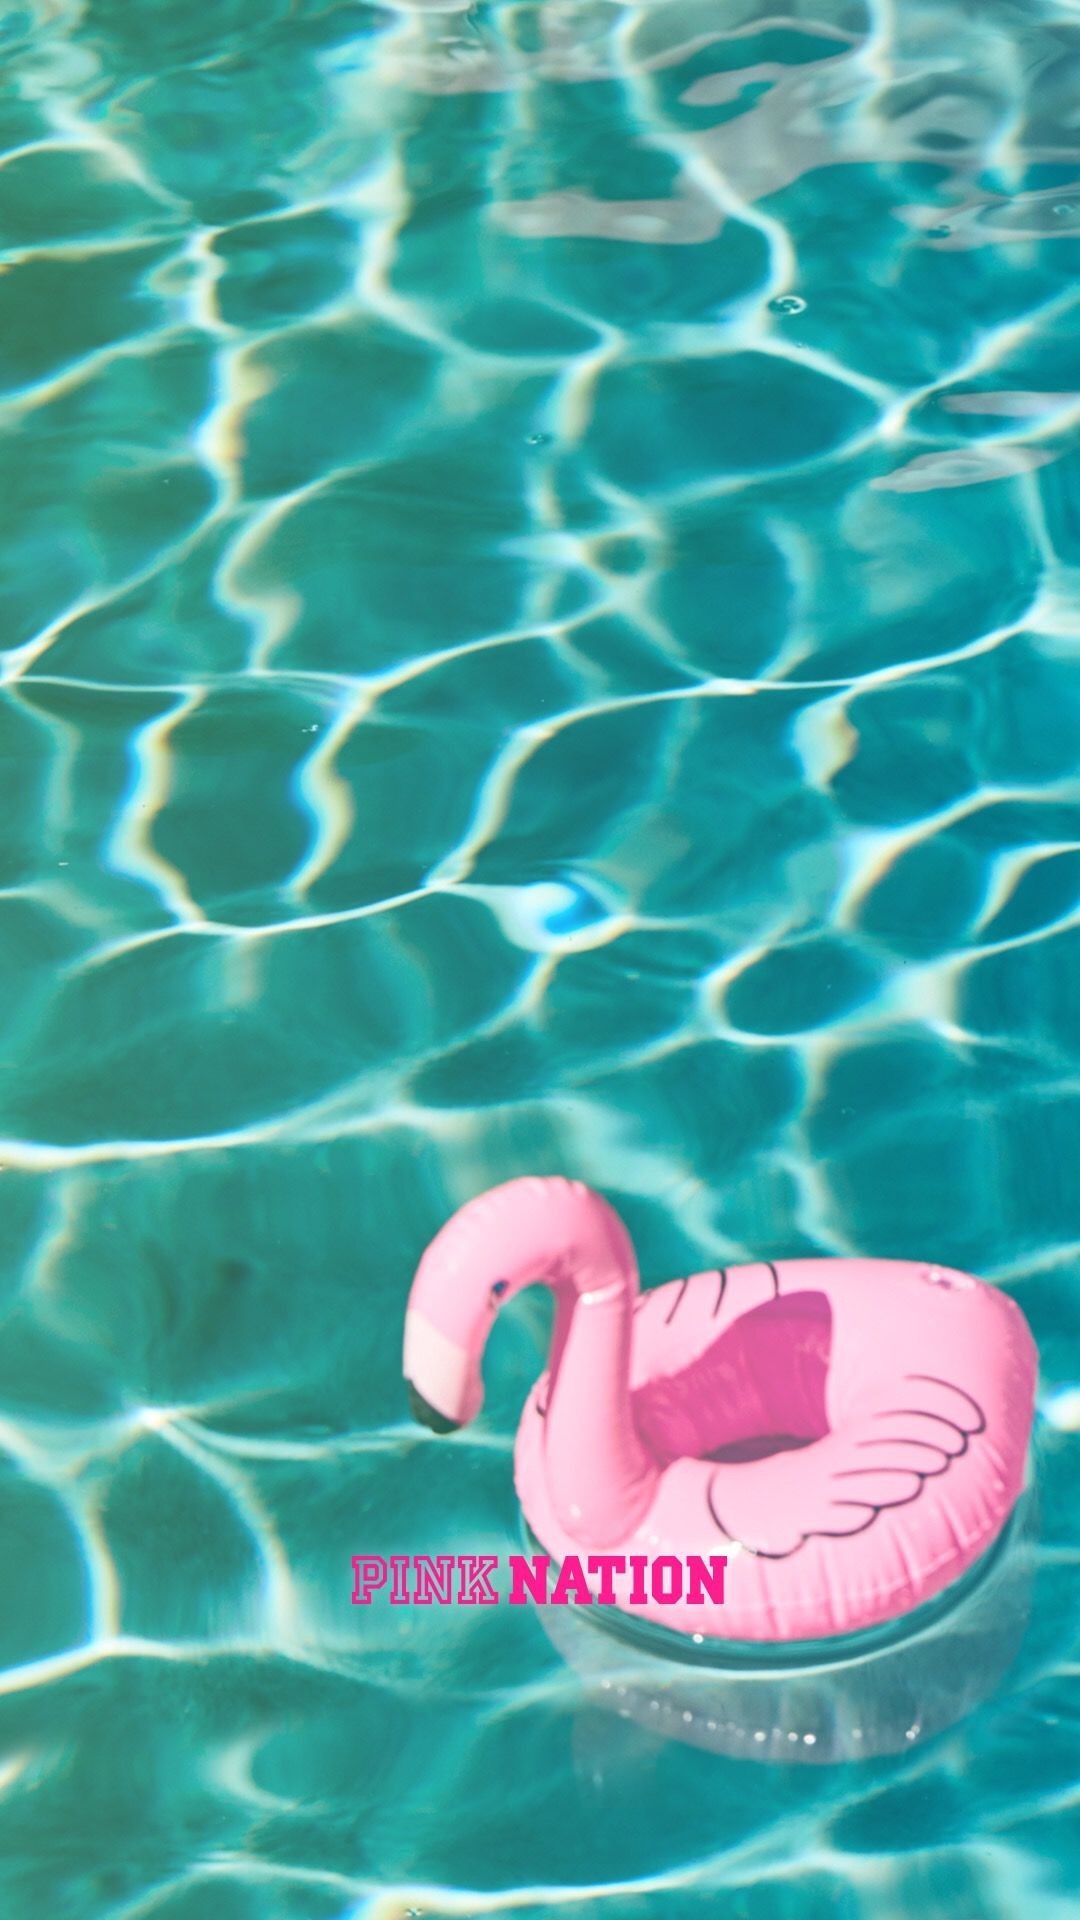 Res: 1080x1920, Victoria's Secret pink wallpaper iPhone background nation 2018 spring break  flamingo pool vibes water